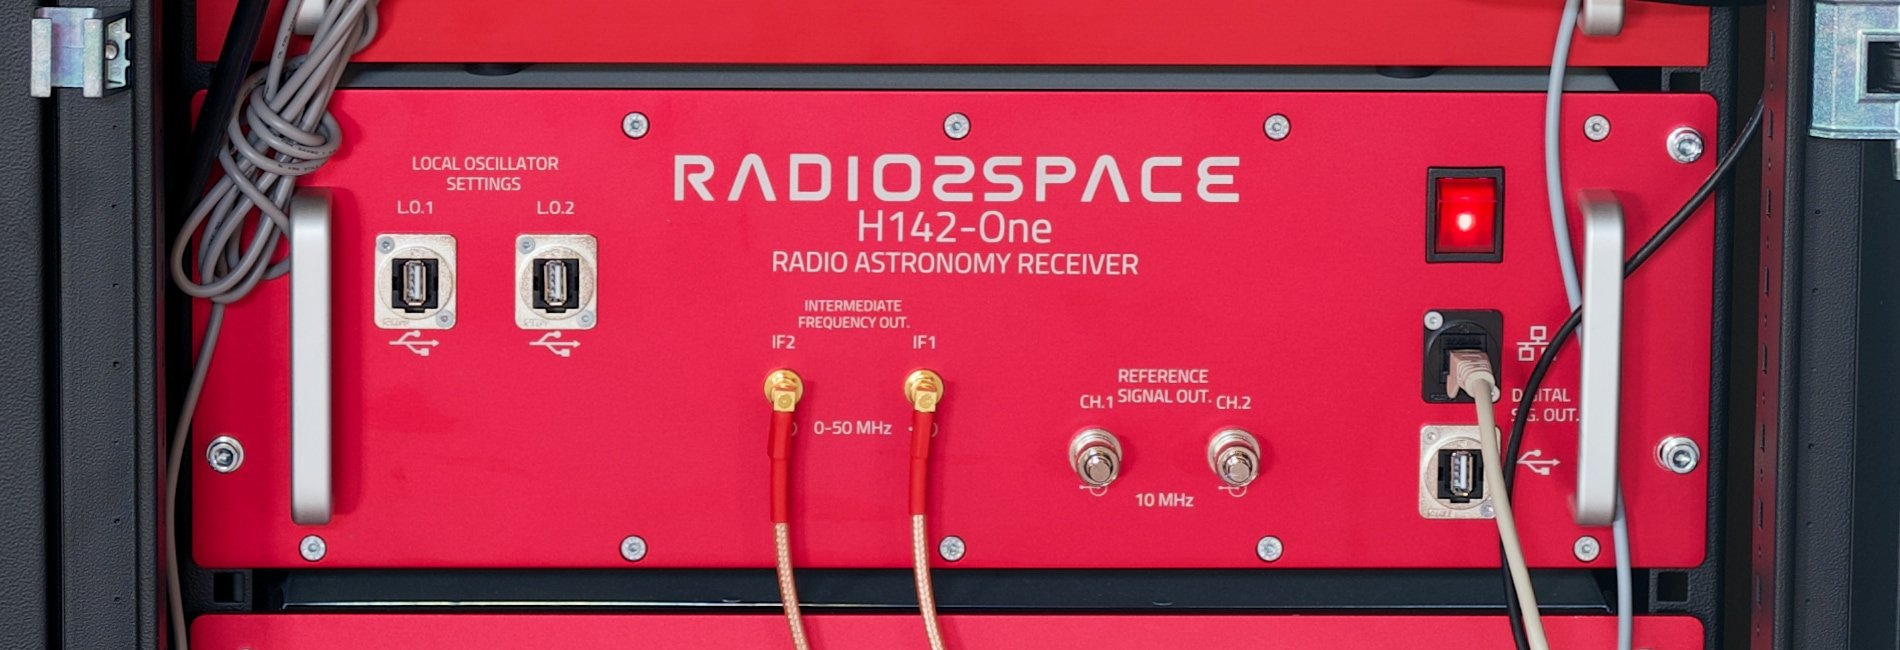 H142-One radio astronomy receiver, spectrometer and radiometer for 1420 MHz frequency